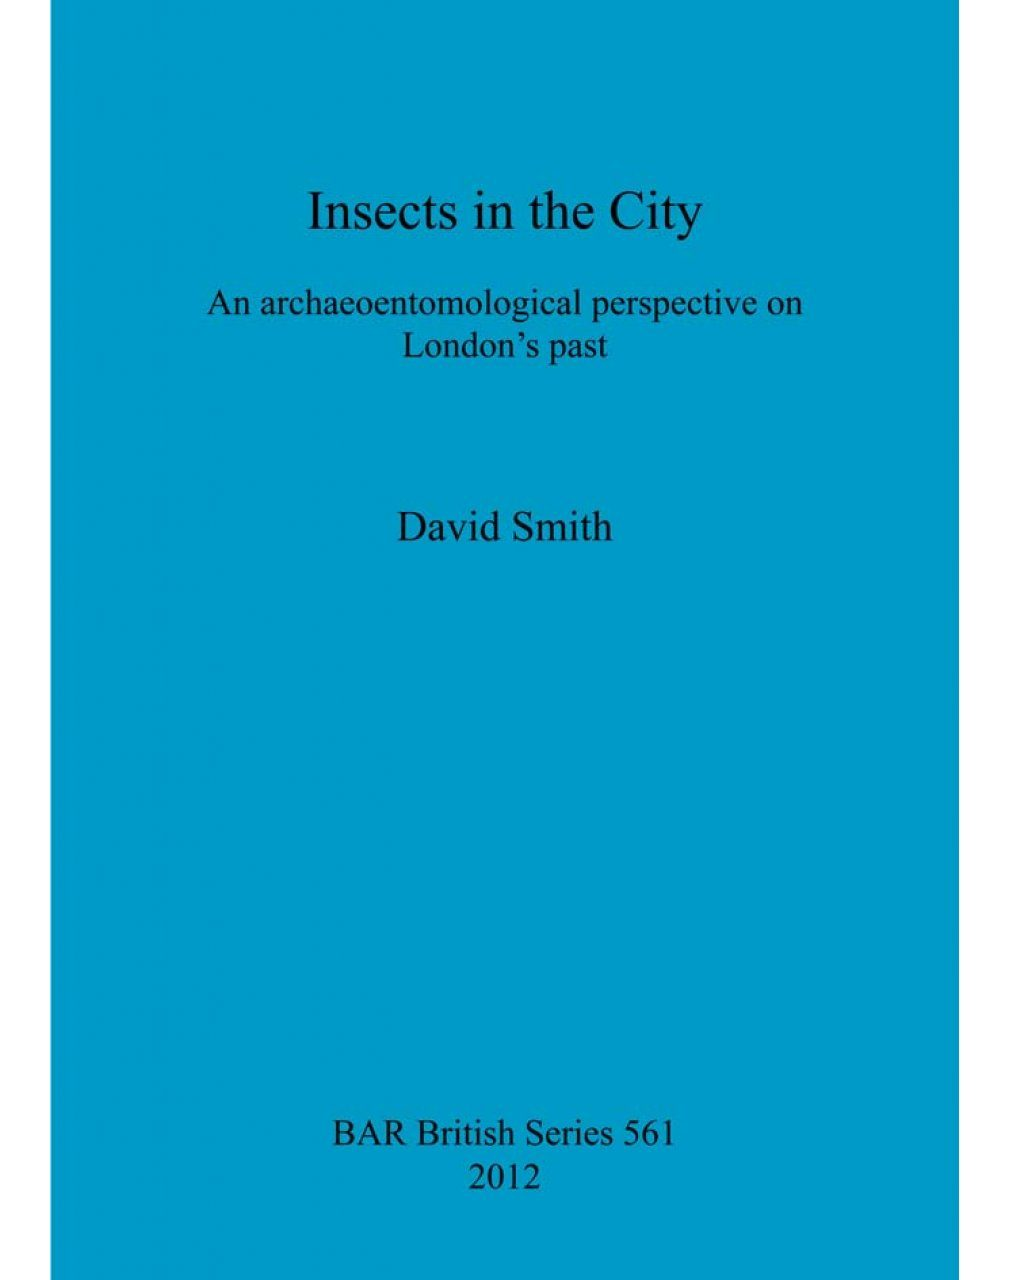 Insects in the City